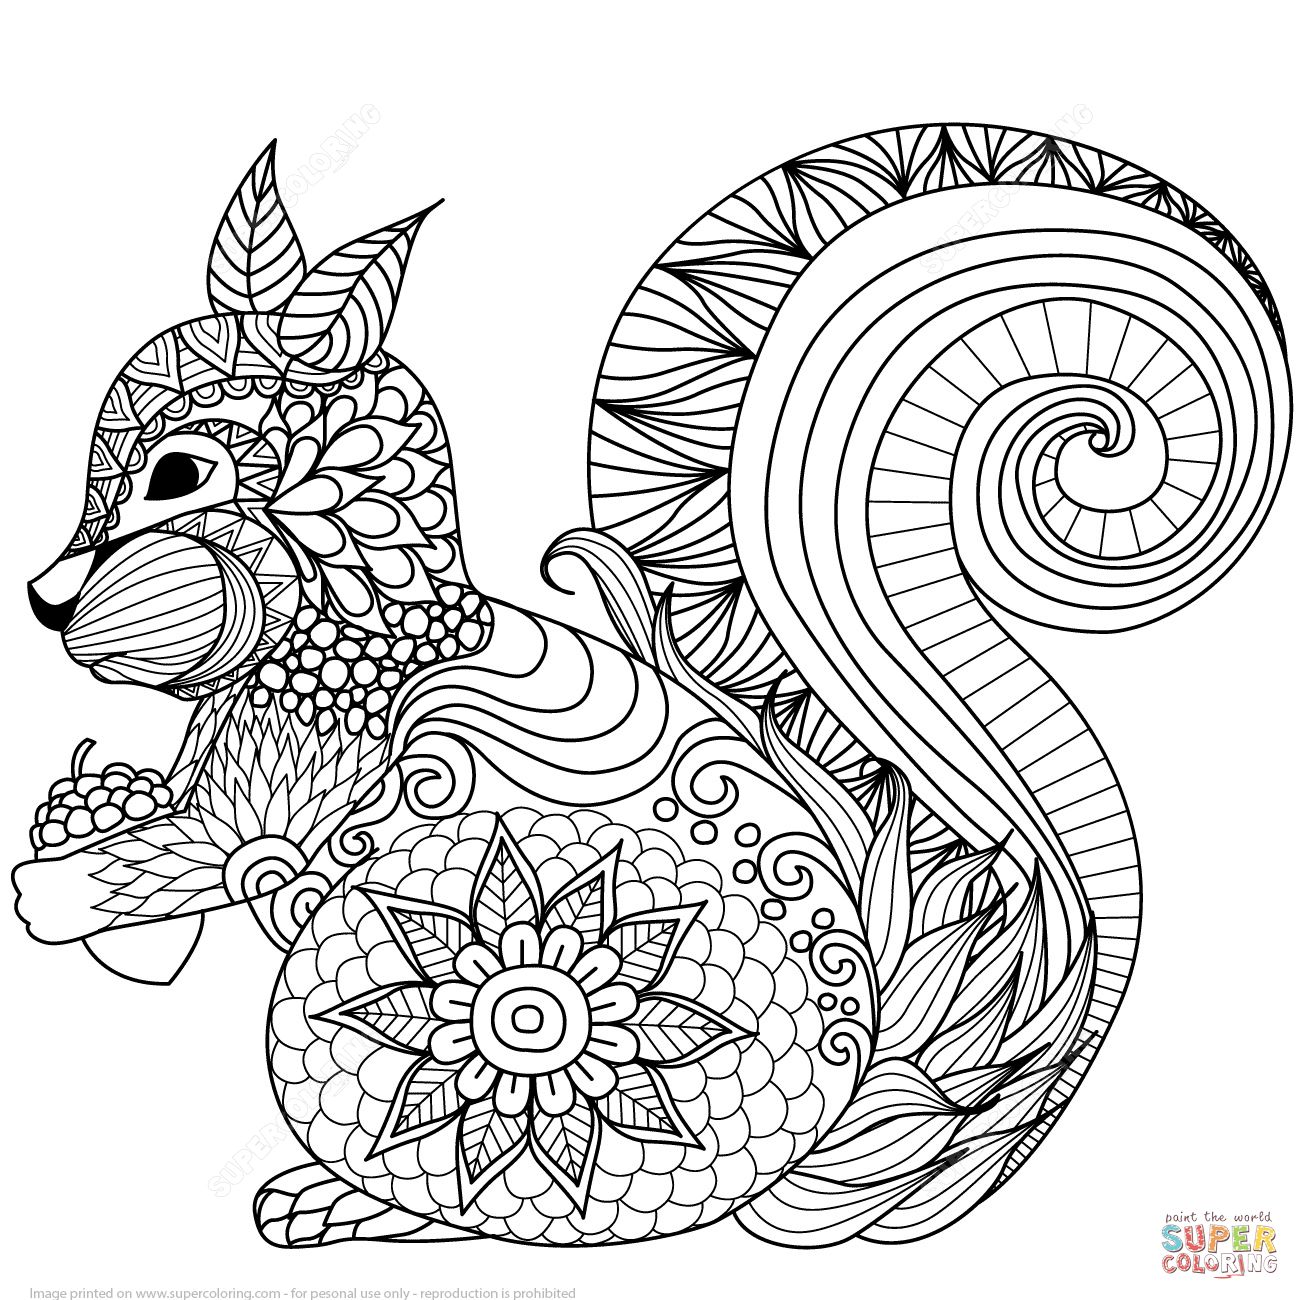 Bilder Ausmalen Ausdrucken Kostenlos Lovely Squirrel Zentangle Coloring Page Free Printable Coloring